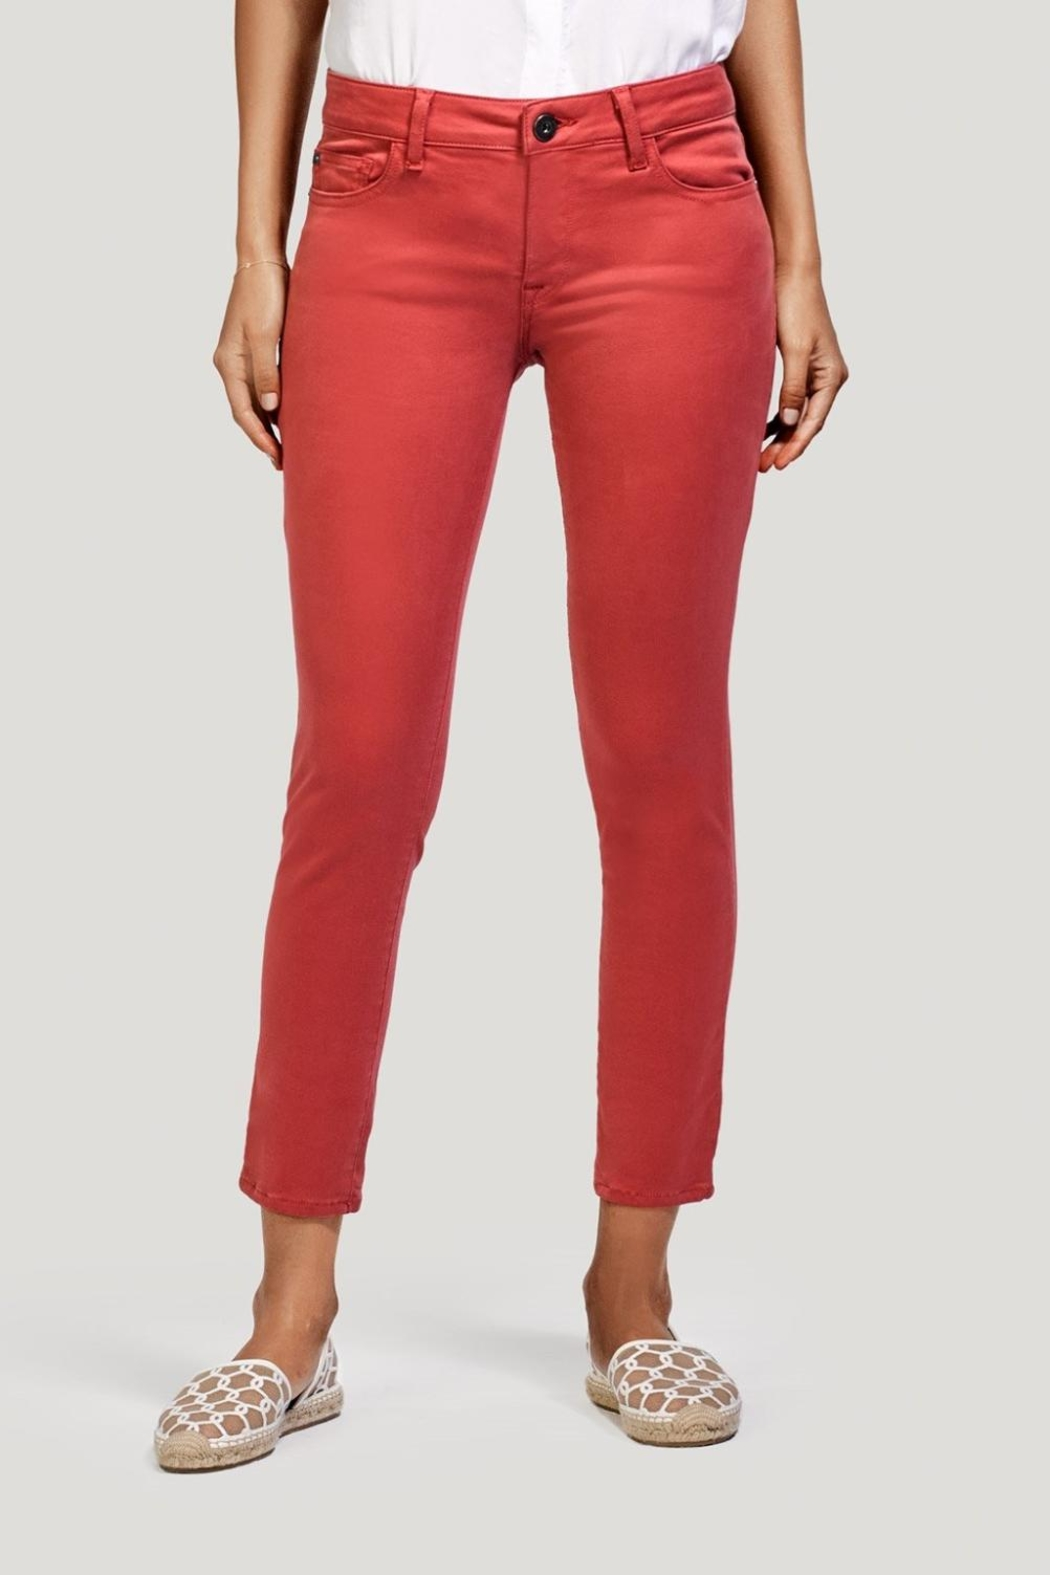 DL 1961 Coral Ankle Skinny Jeans - Main Image